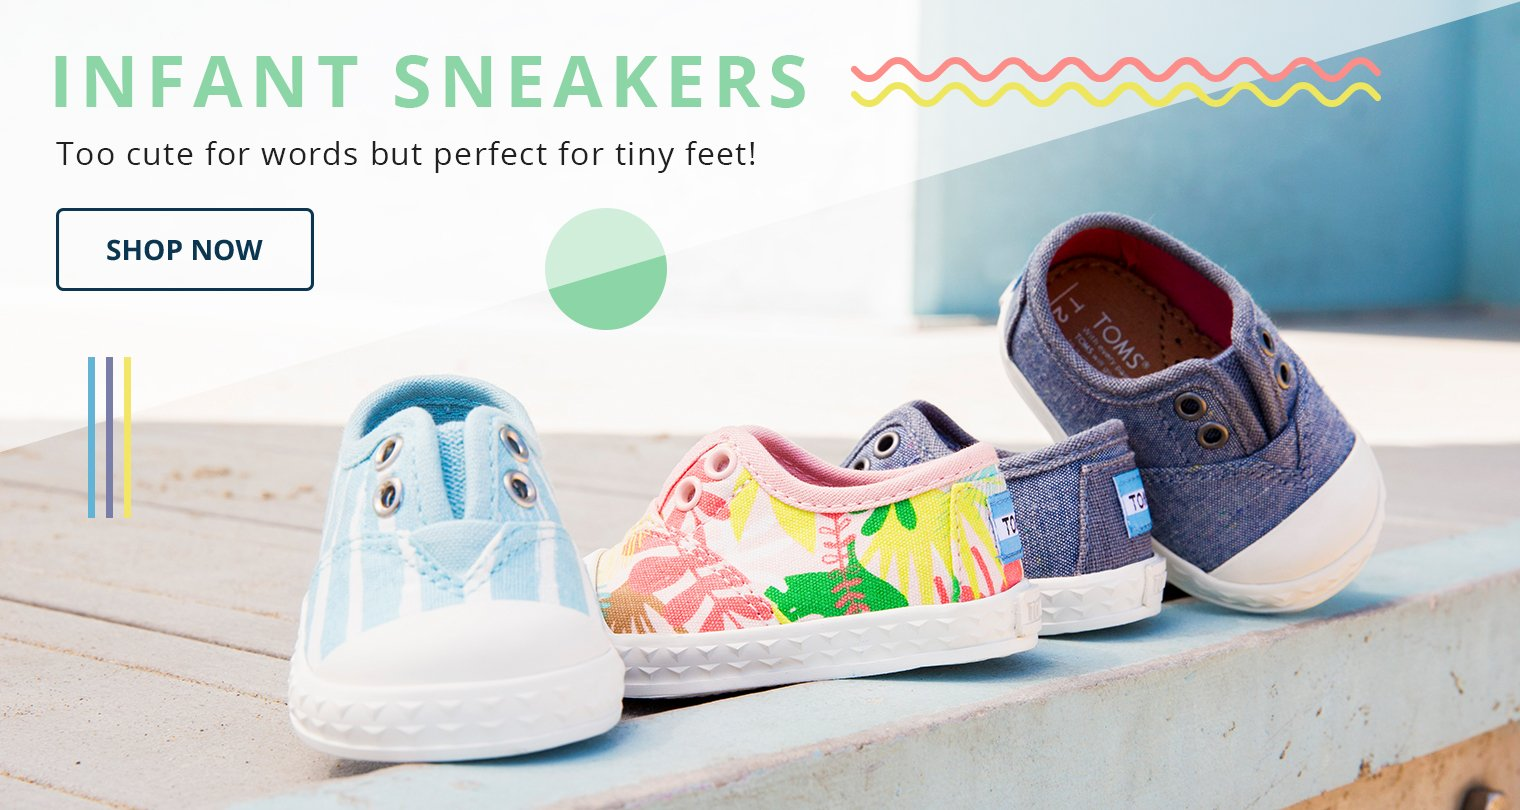 Infant Sneakers. Too cute for words but perfect for tiny feet! Shop Now.